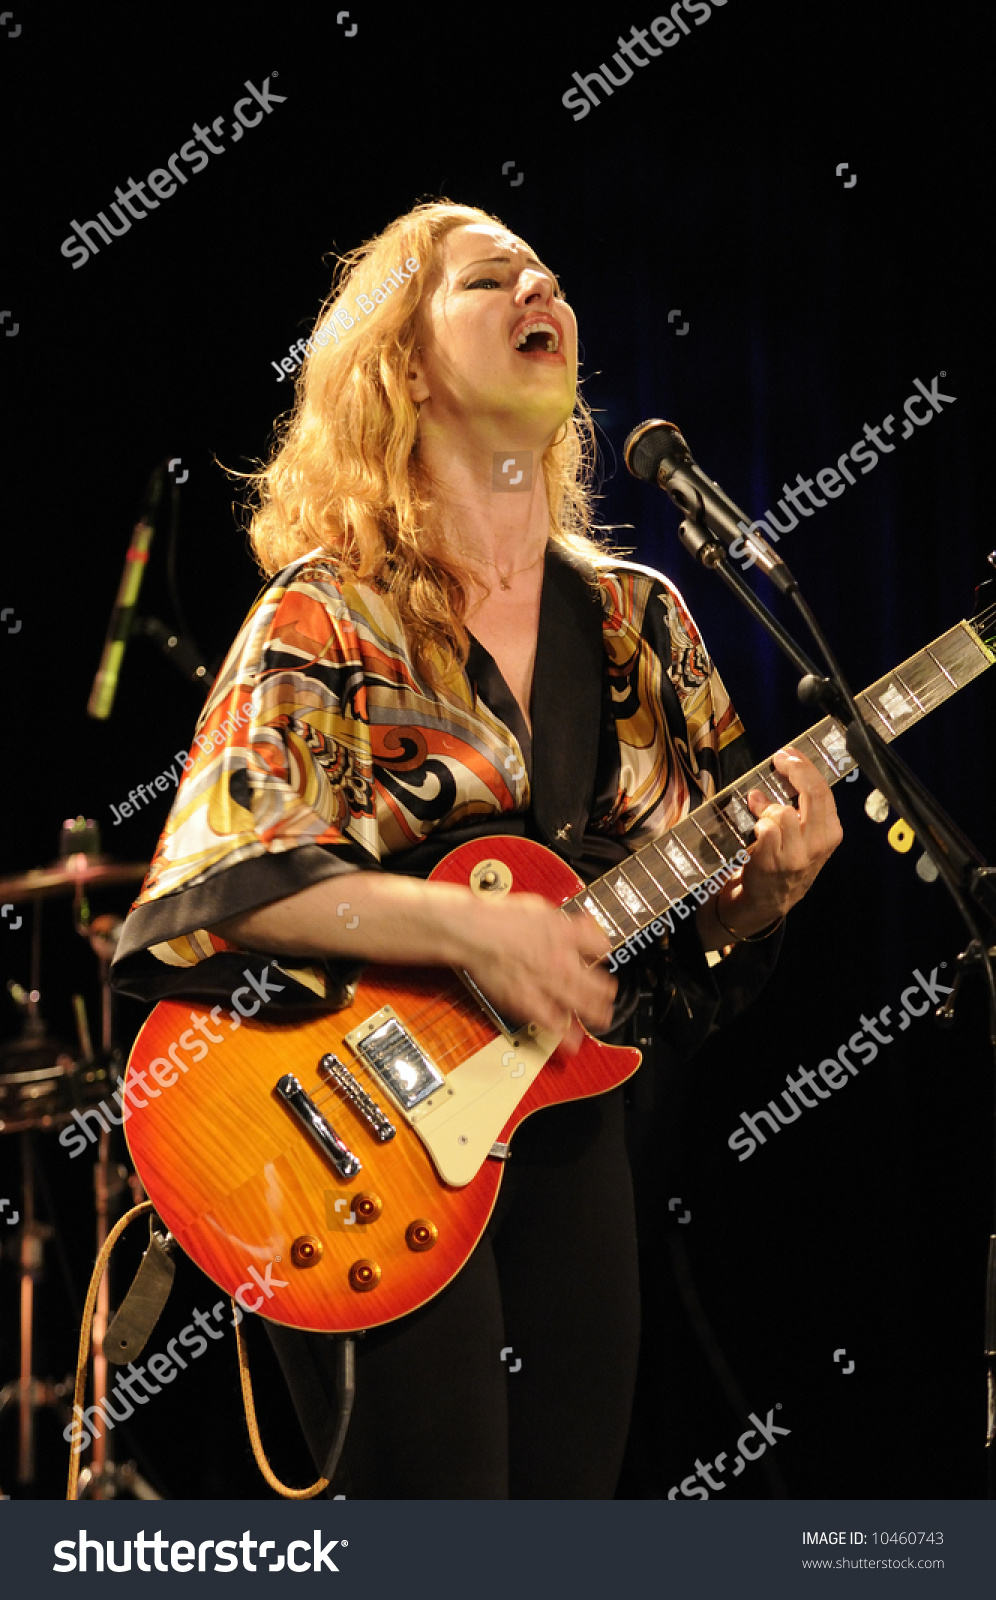 Attractive Singing Female Guitarist Playing At A Life Concert